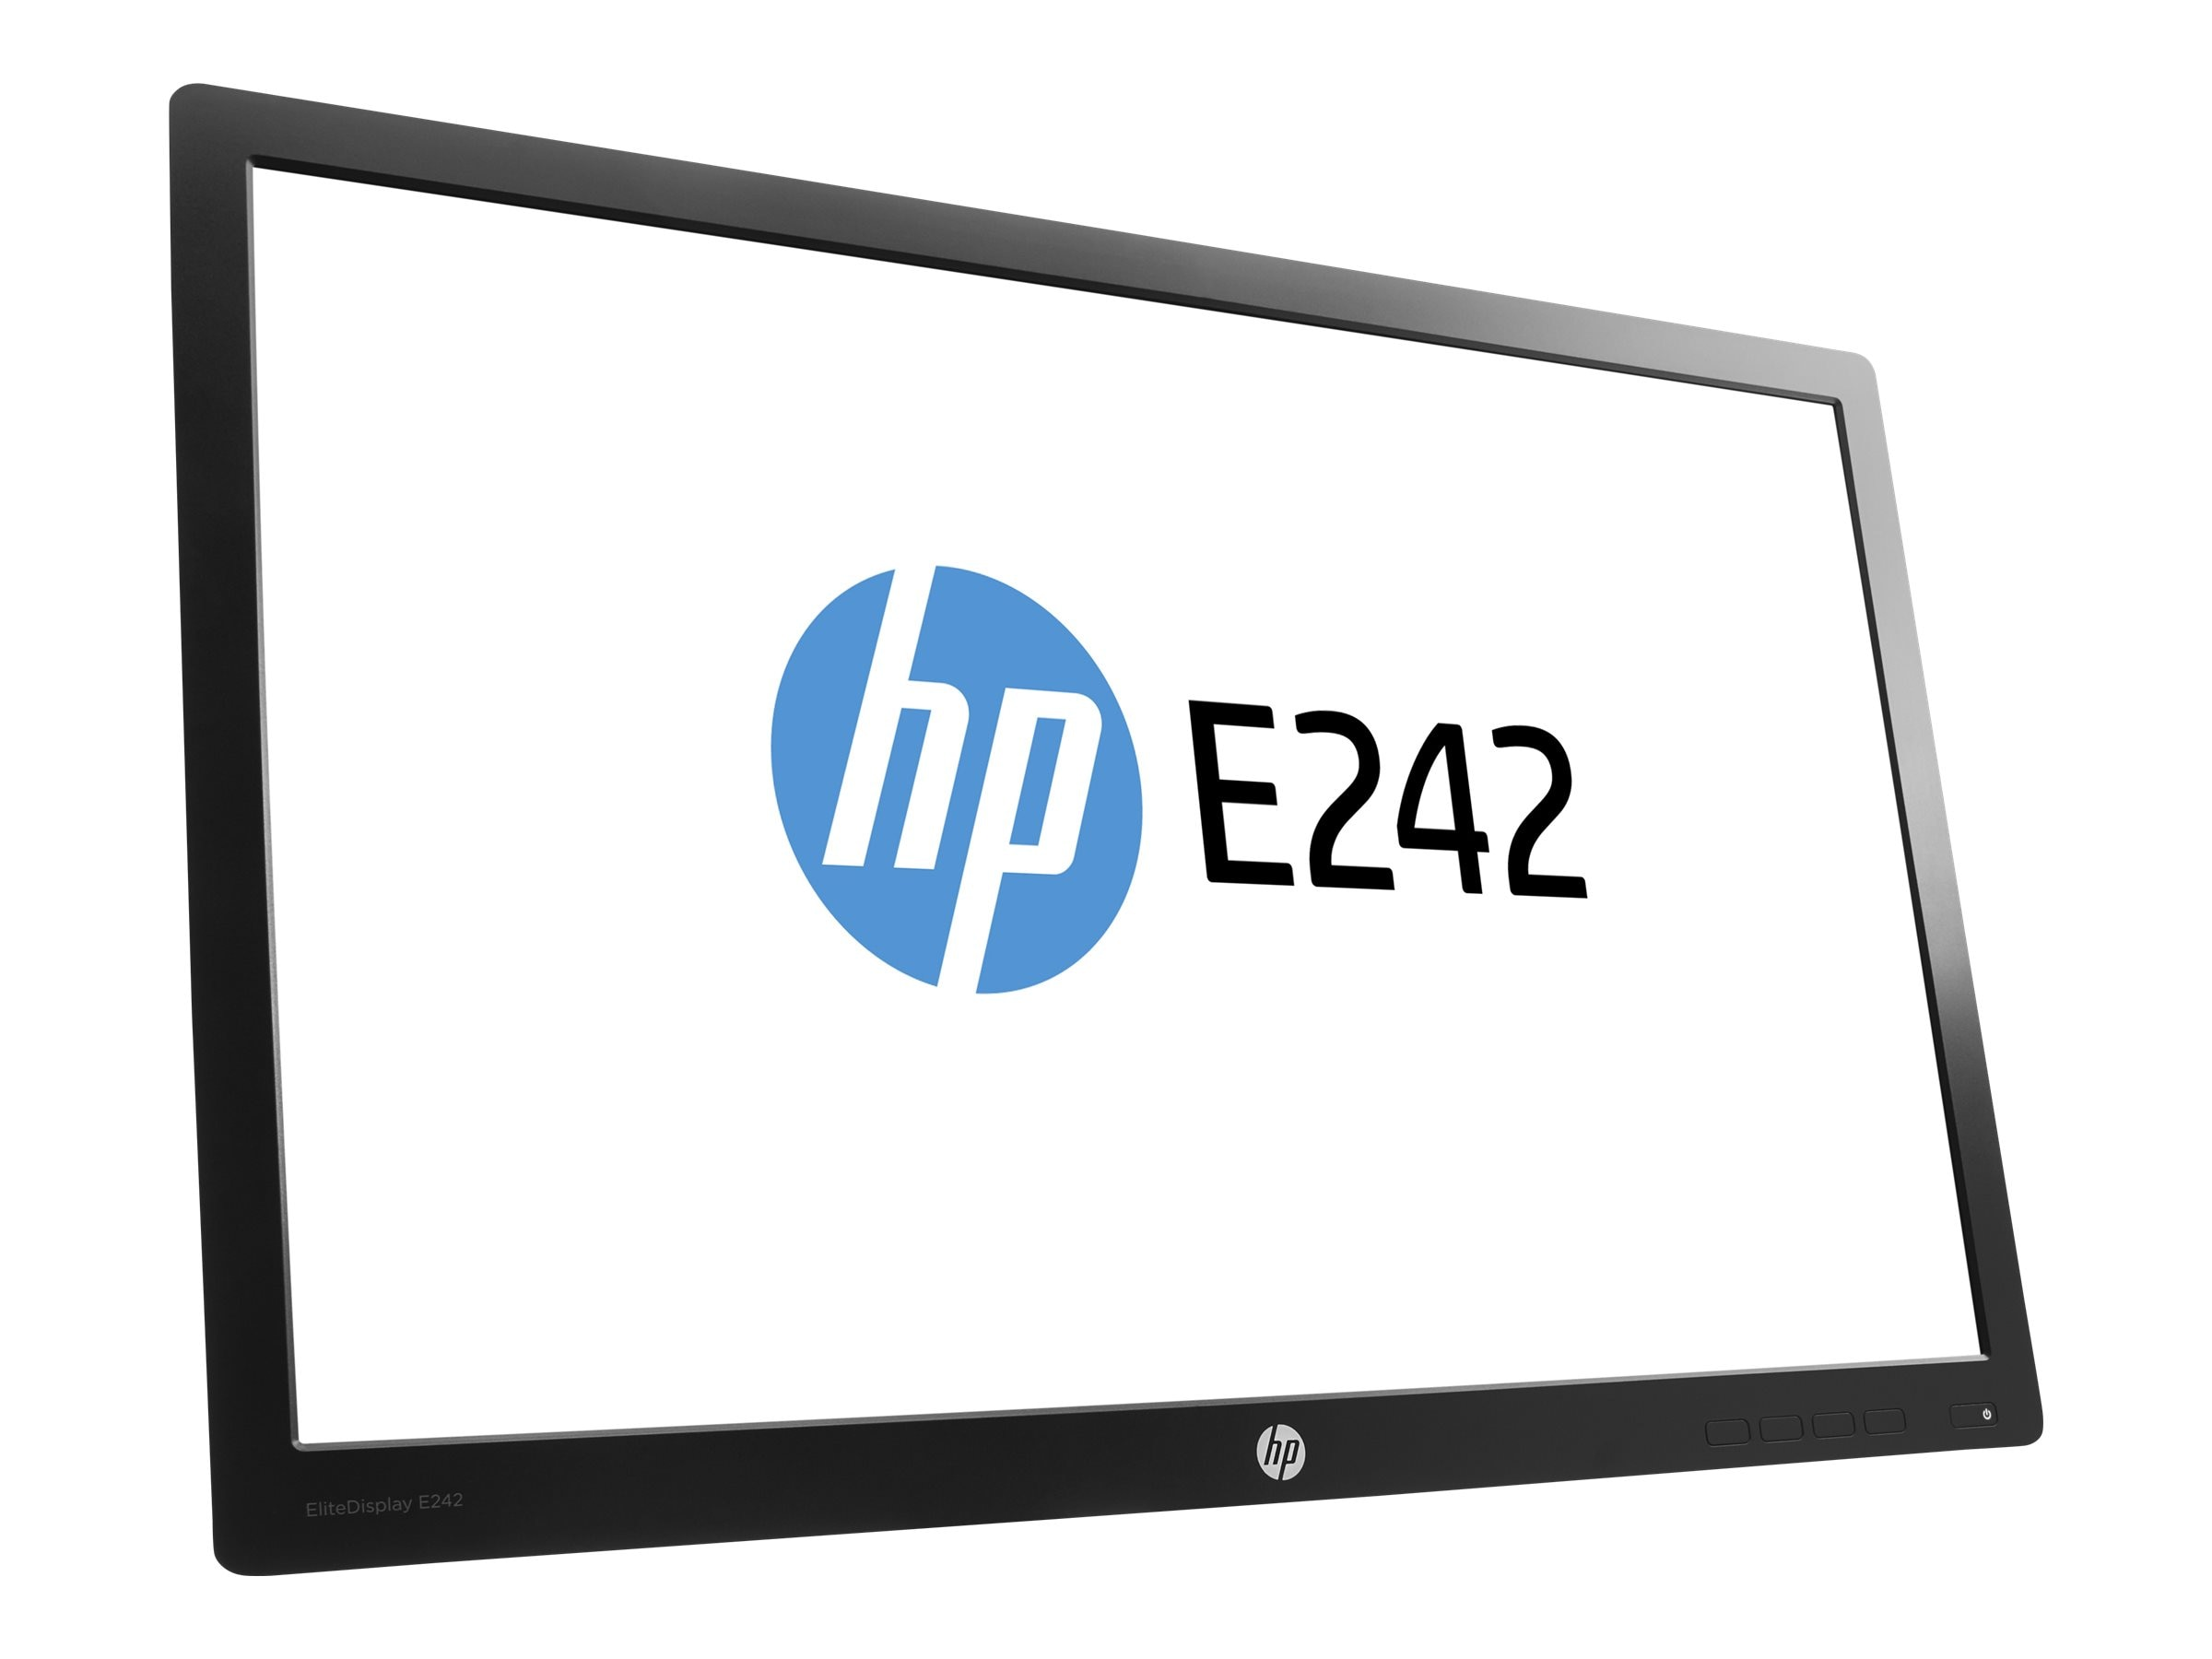 HP 24 E242 Full HD LED-LCD Monitor, Black (Head Only), N0Q25AA#ABA